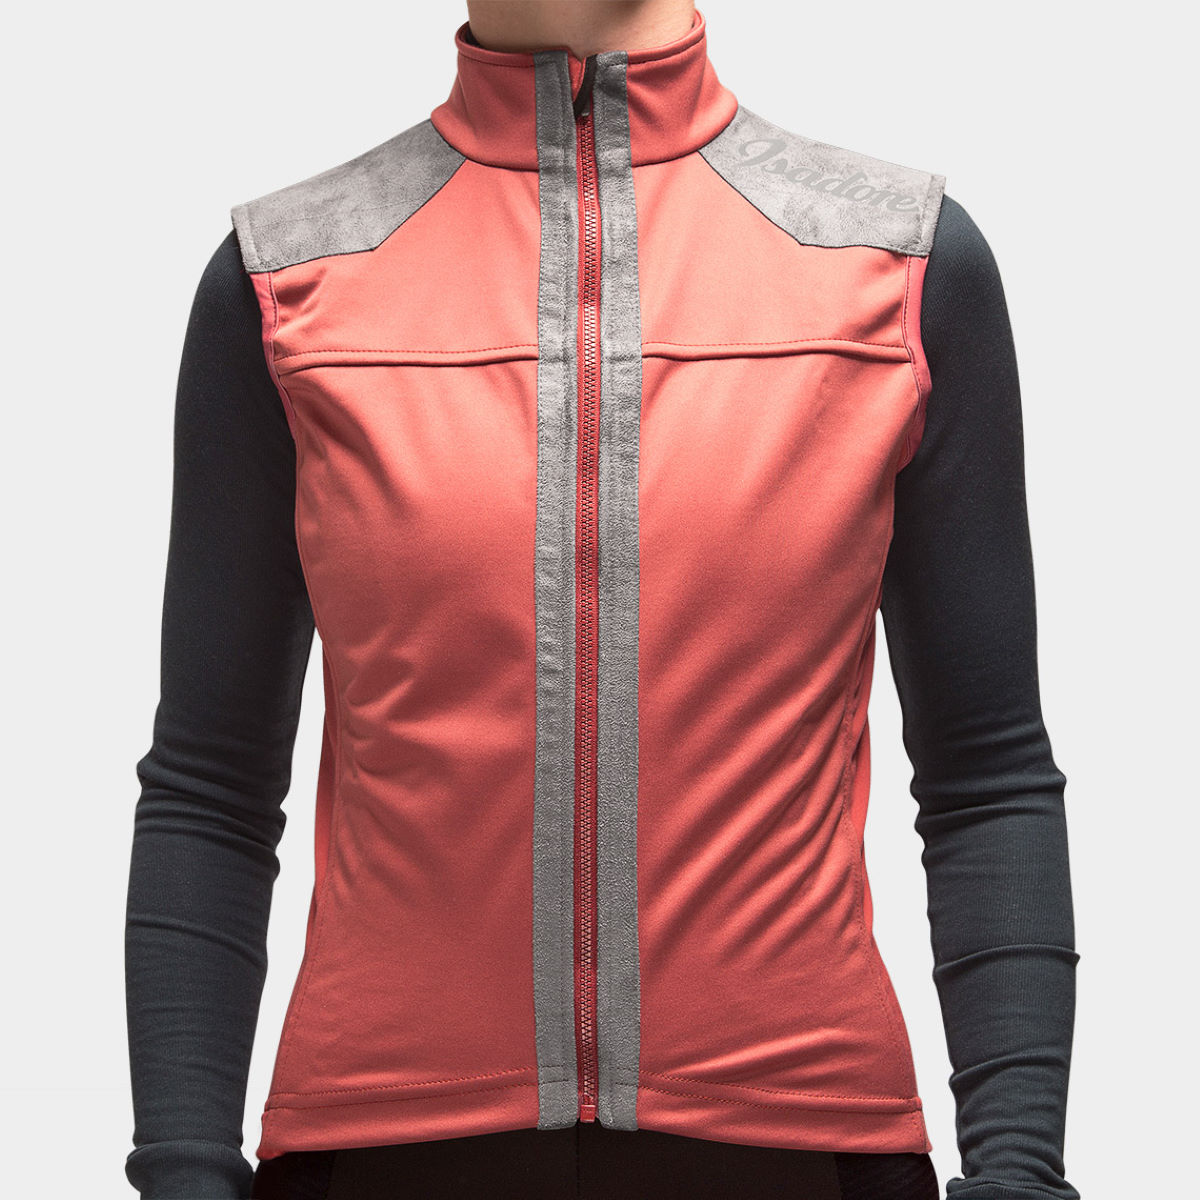 Gilet Femme Isadore Membrane Softshell (sans manches) - L Marsala